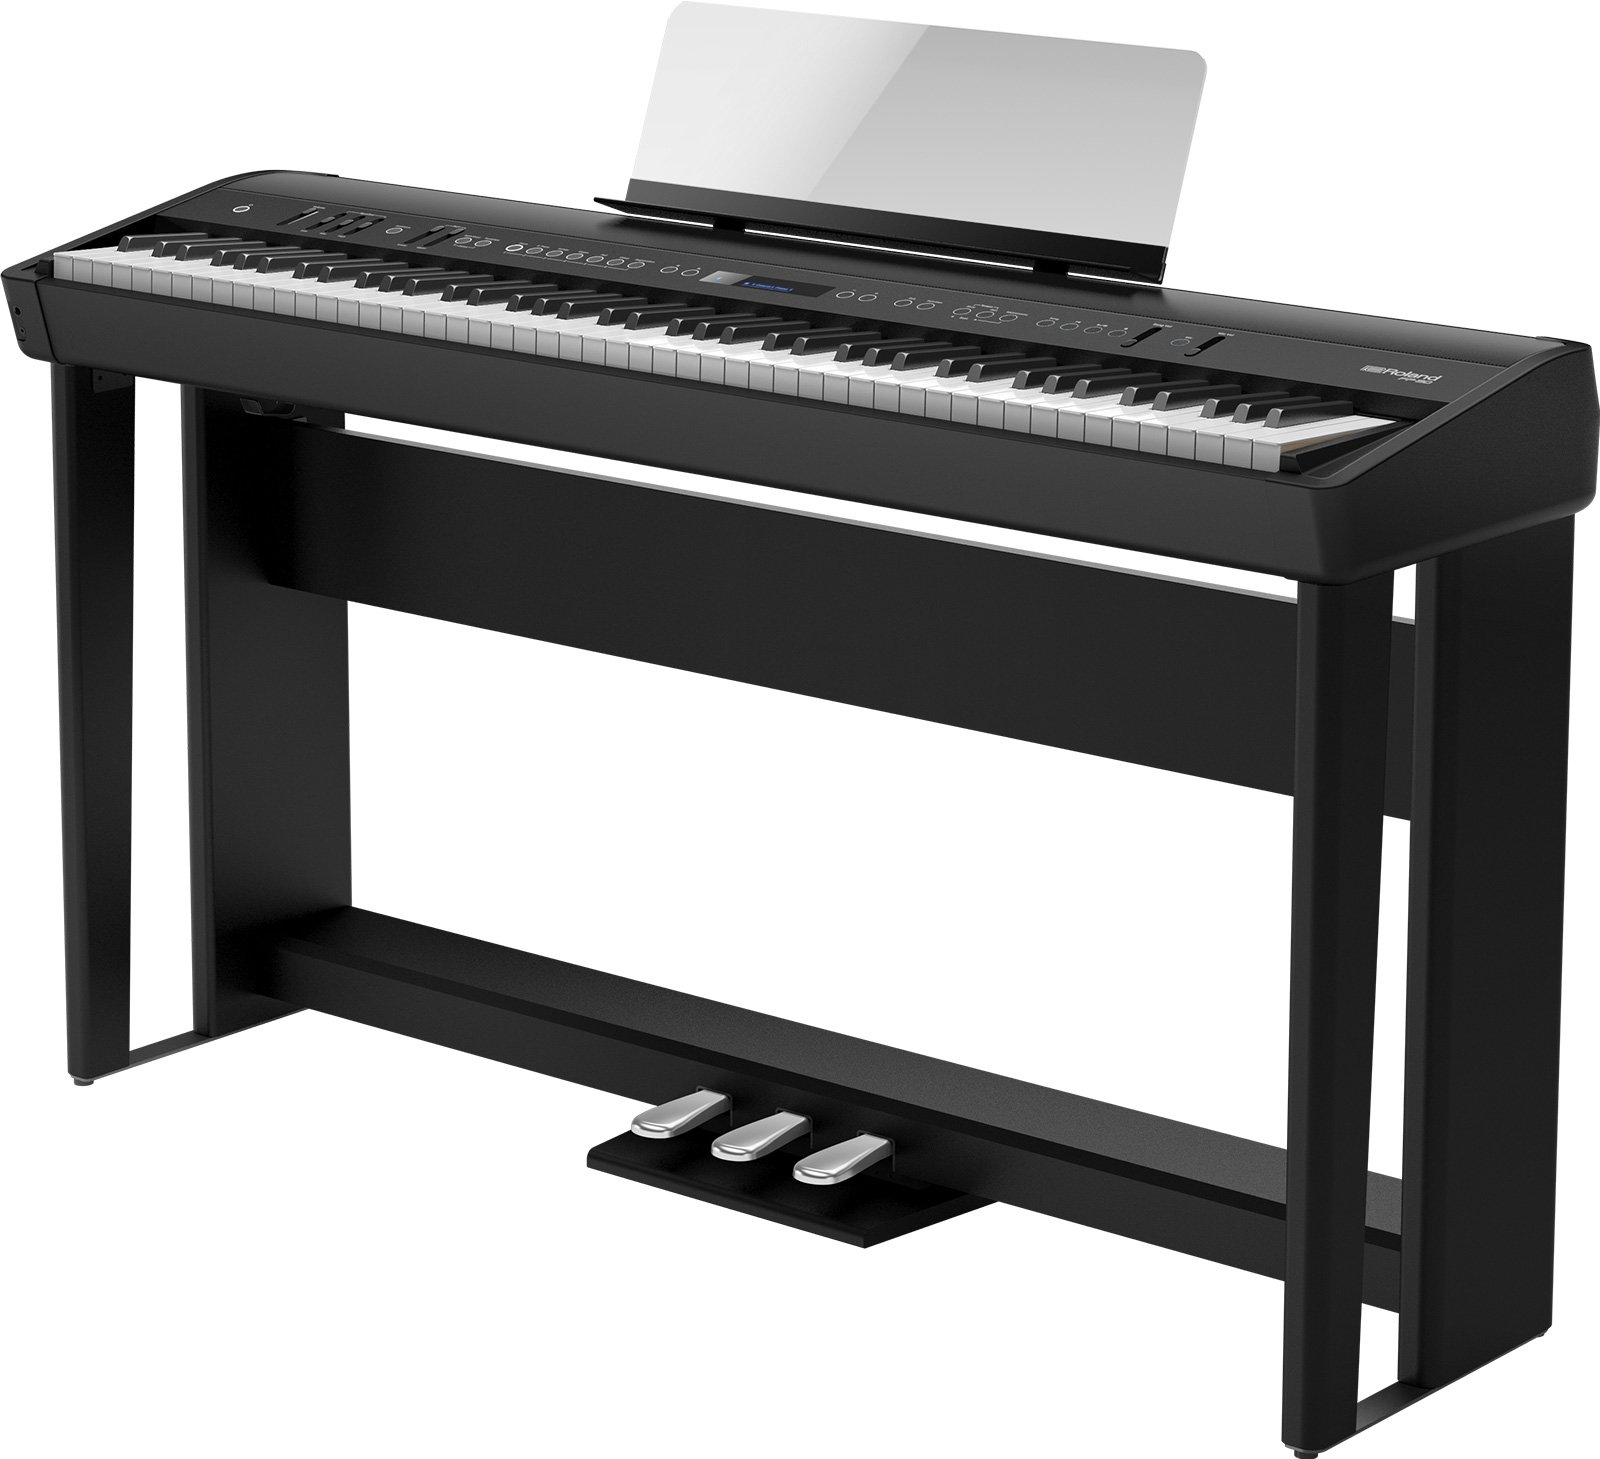 Roland FP-90-BKC Flagship Premium 88-note digital piano includes legs and pedal board